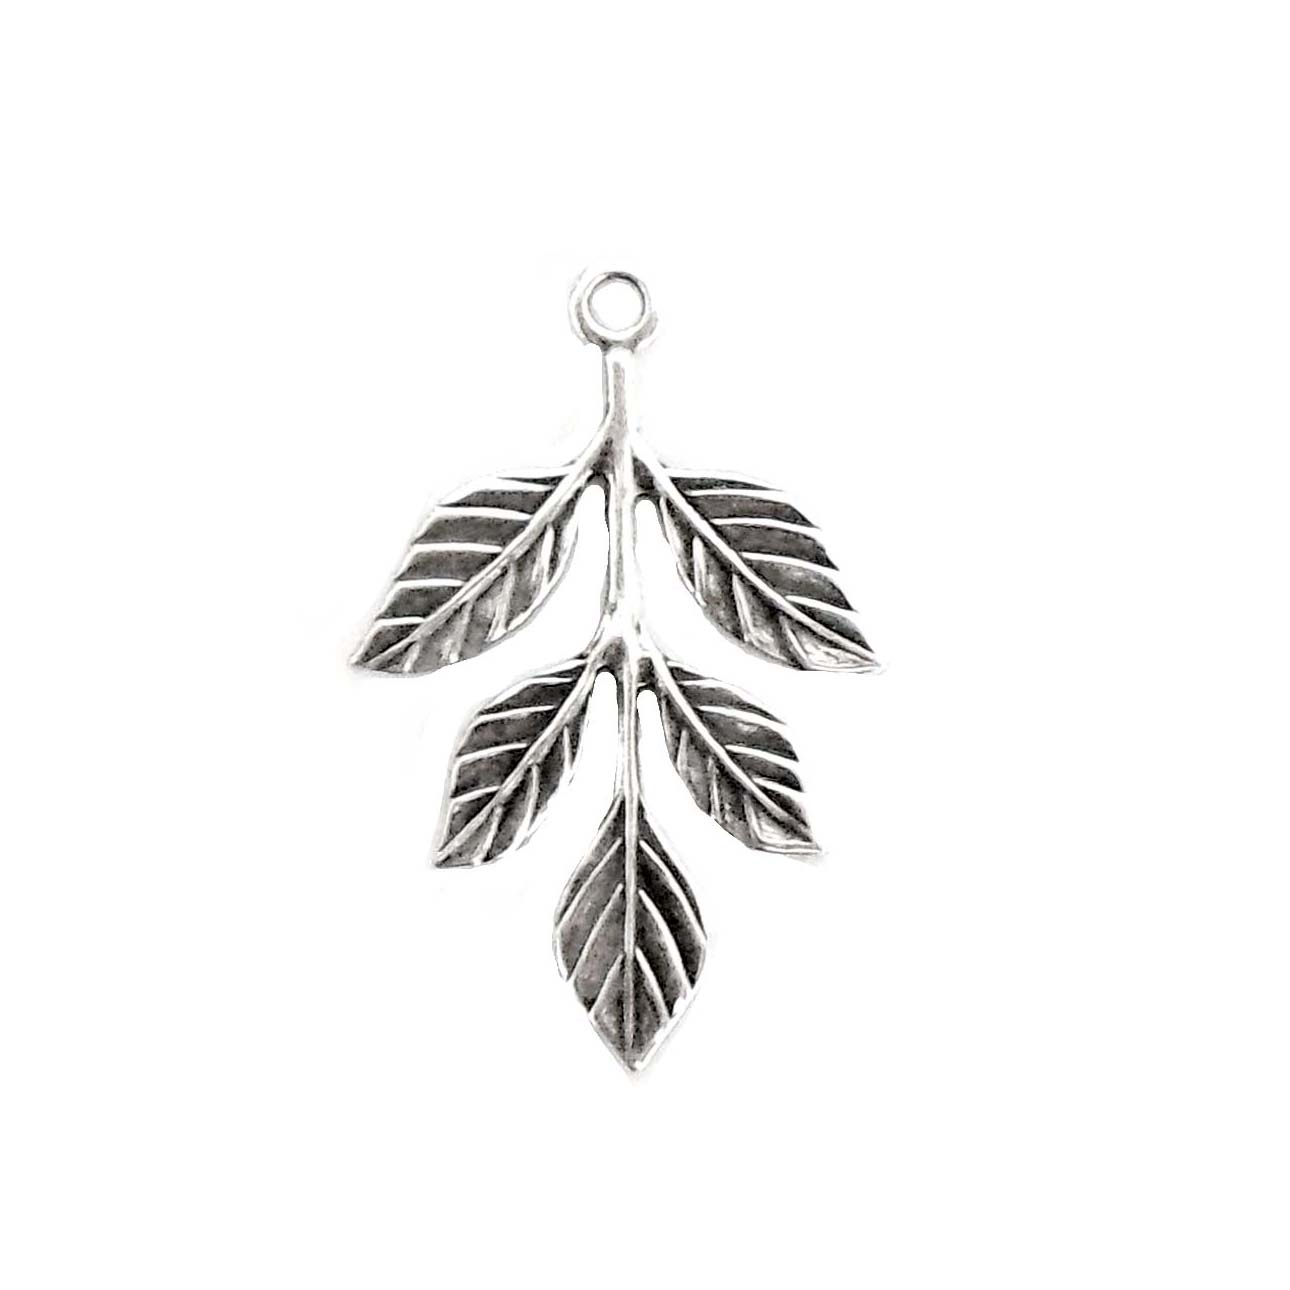 silverware silverplate leaves, leaf, 044, leaves, bsue boutiques, jewelry making, jewelry supplies, vintage, vintage stamping, stamping, leaf stamping, silverware silverplate, charm, pendant, leaf pendant, leaf charm